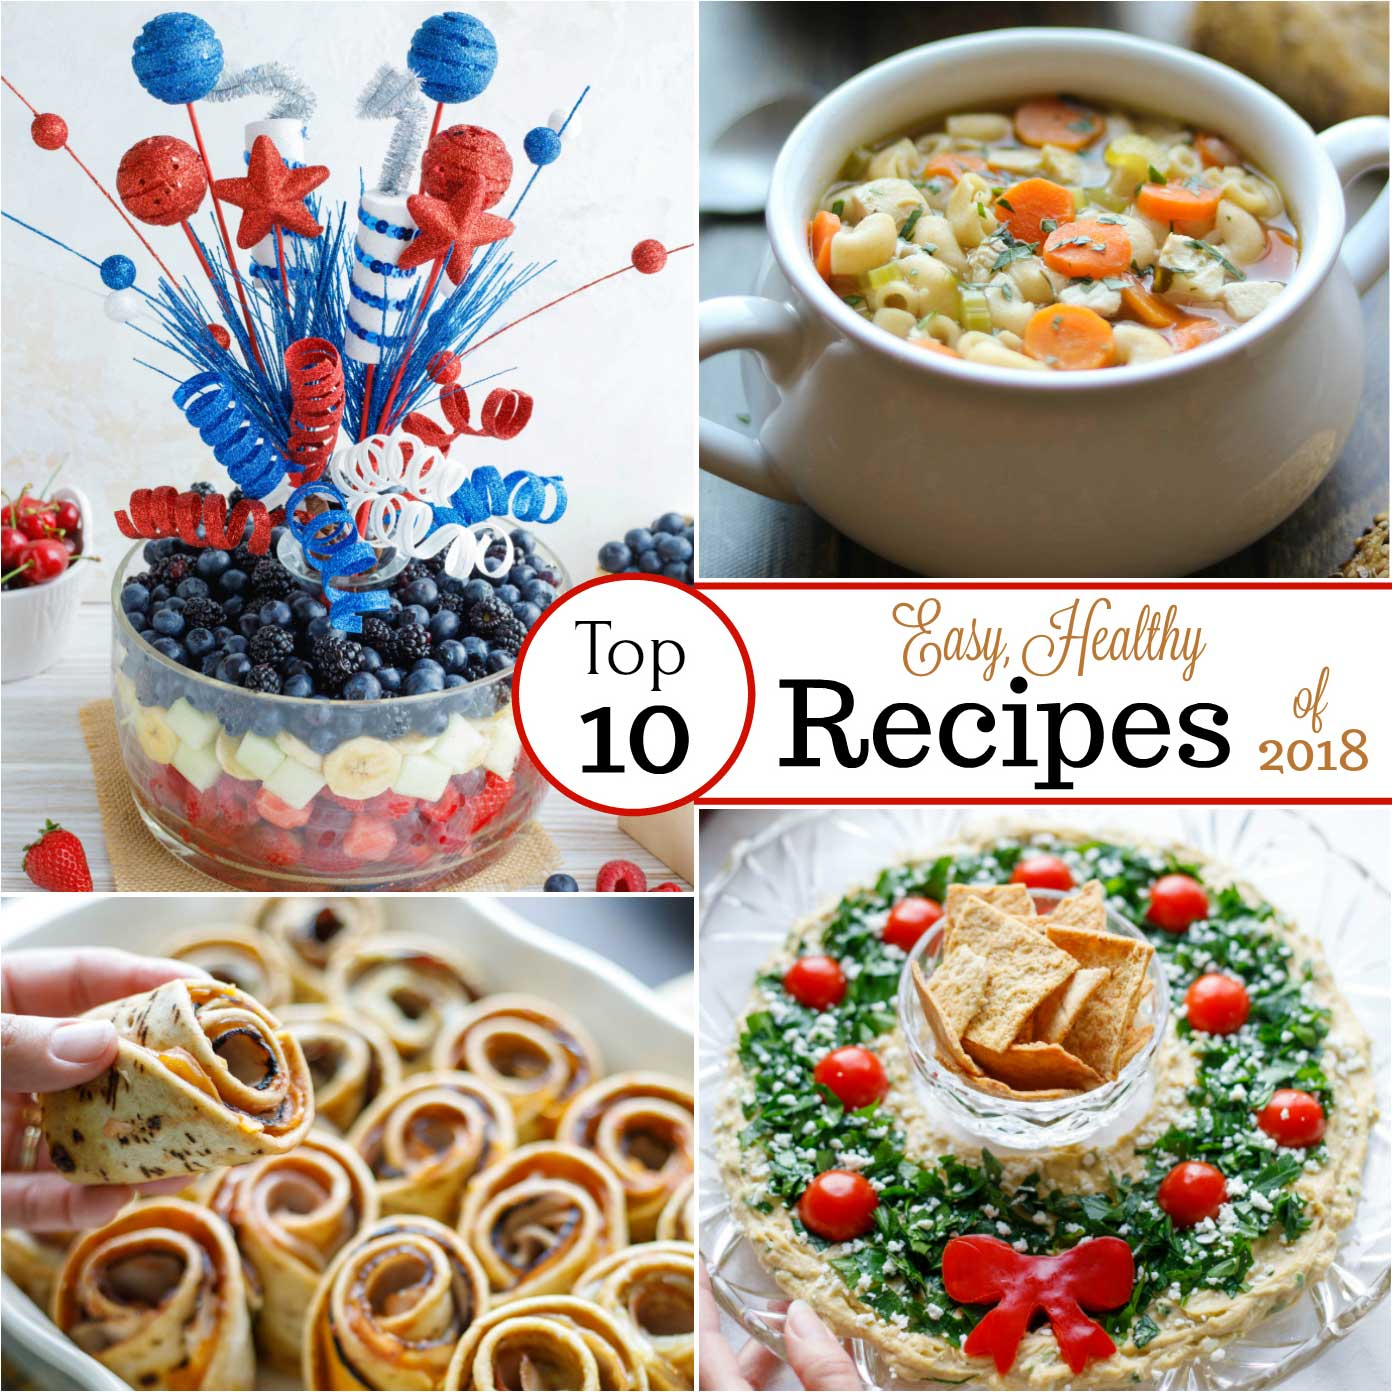 Easy, healthy recipes your whole family will love! These favorite recipes are absolute must-tries – our most popular recipes of an entire year! From our smash hit Rotisserie Chicken Noodle Soup to scrumptiously lighter Baked Party Sandwiches and showstopper Fruit Salads … and even a pretty, edible Christmas Wreath! These treasured, best recipes are healthy and delicious, and so quick and easy, too! Check out our most popular recipes of 2018, and find your own faves! | www.TwoHealthyKitchens.com